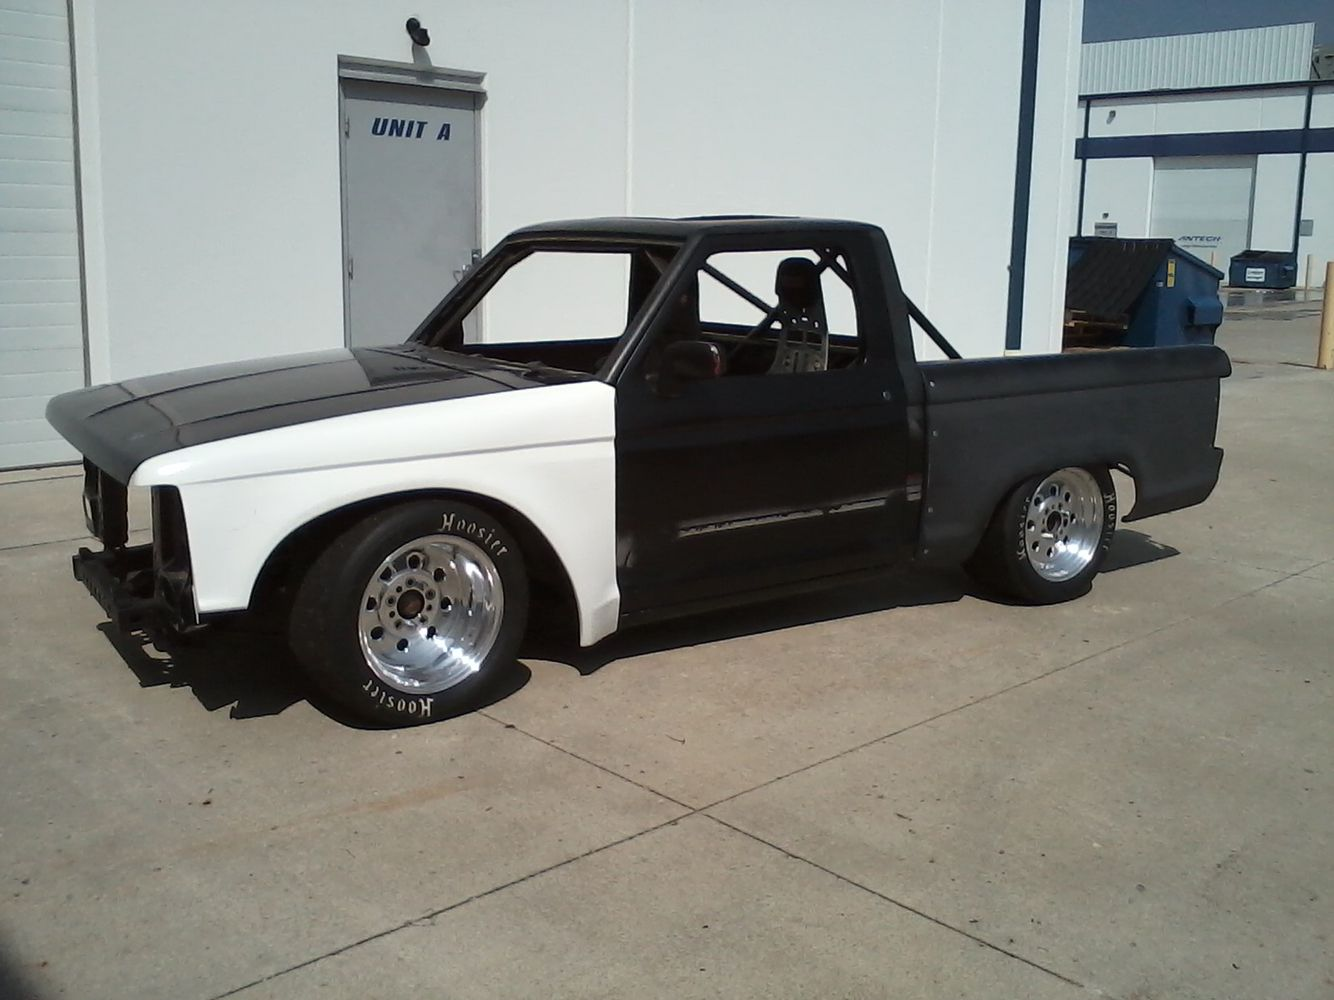 hight resolution of gumby and my ford ranger being built for scca next year full tube chassis and sr20det powered